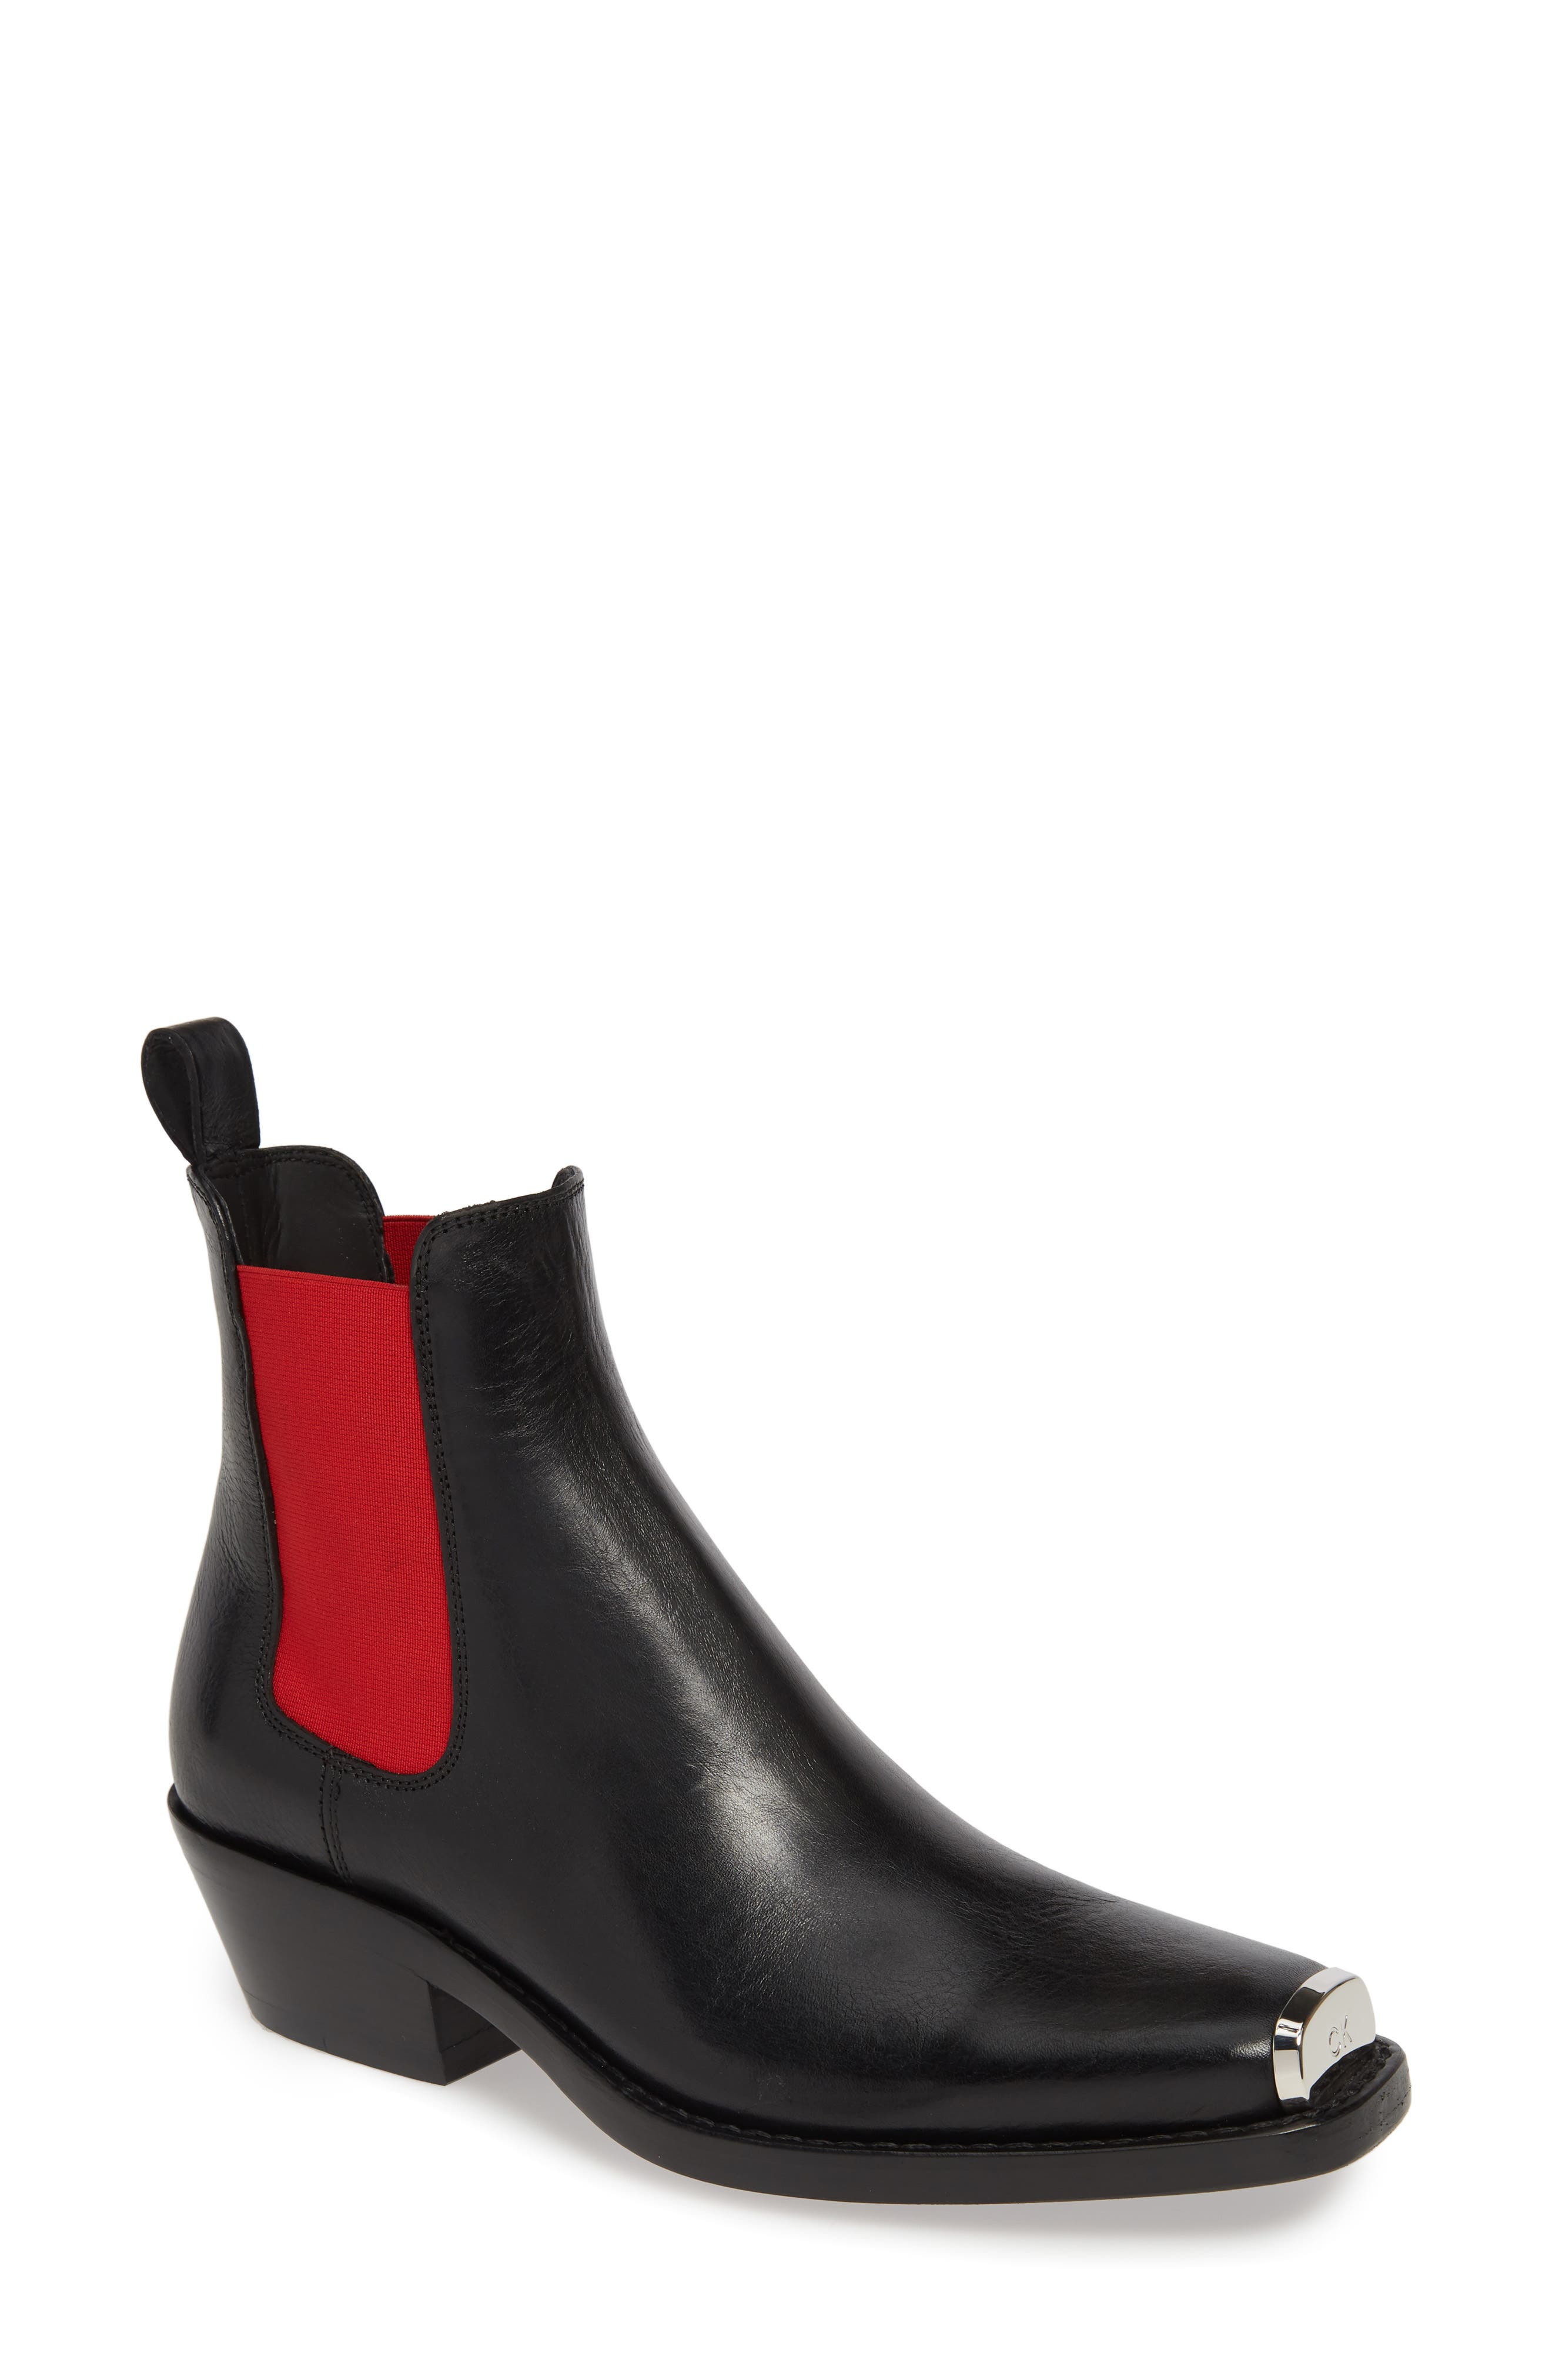 CALVIN KLEIN 205W39NYC Claire Western Chelsea Boot, Main, color, BLACK/ RED